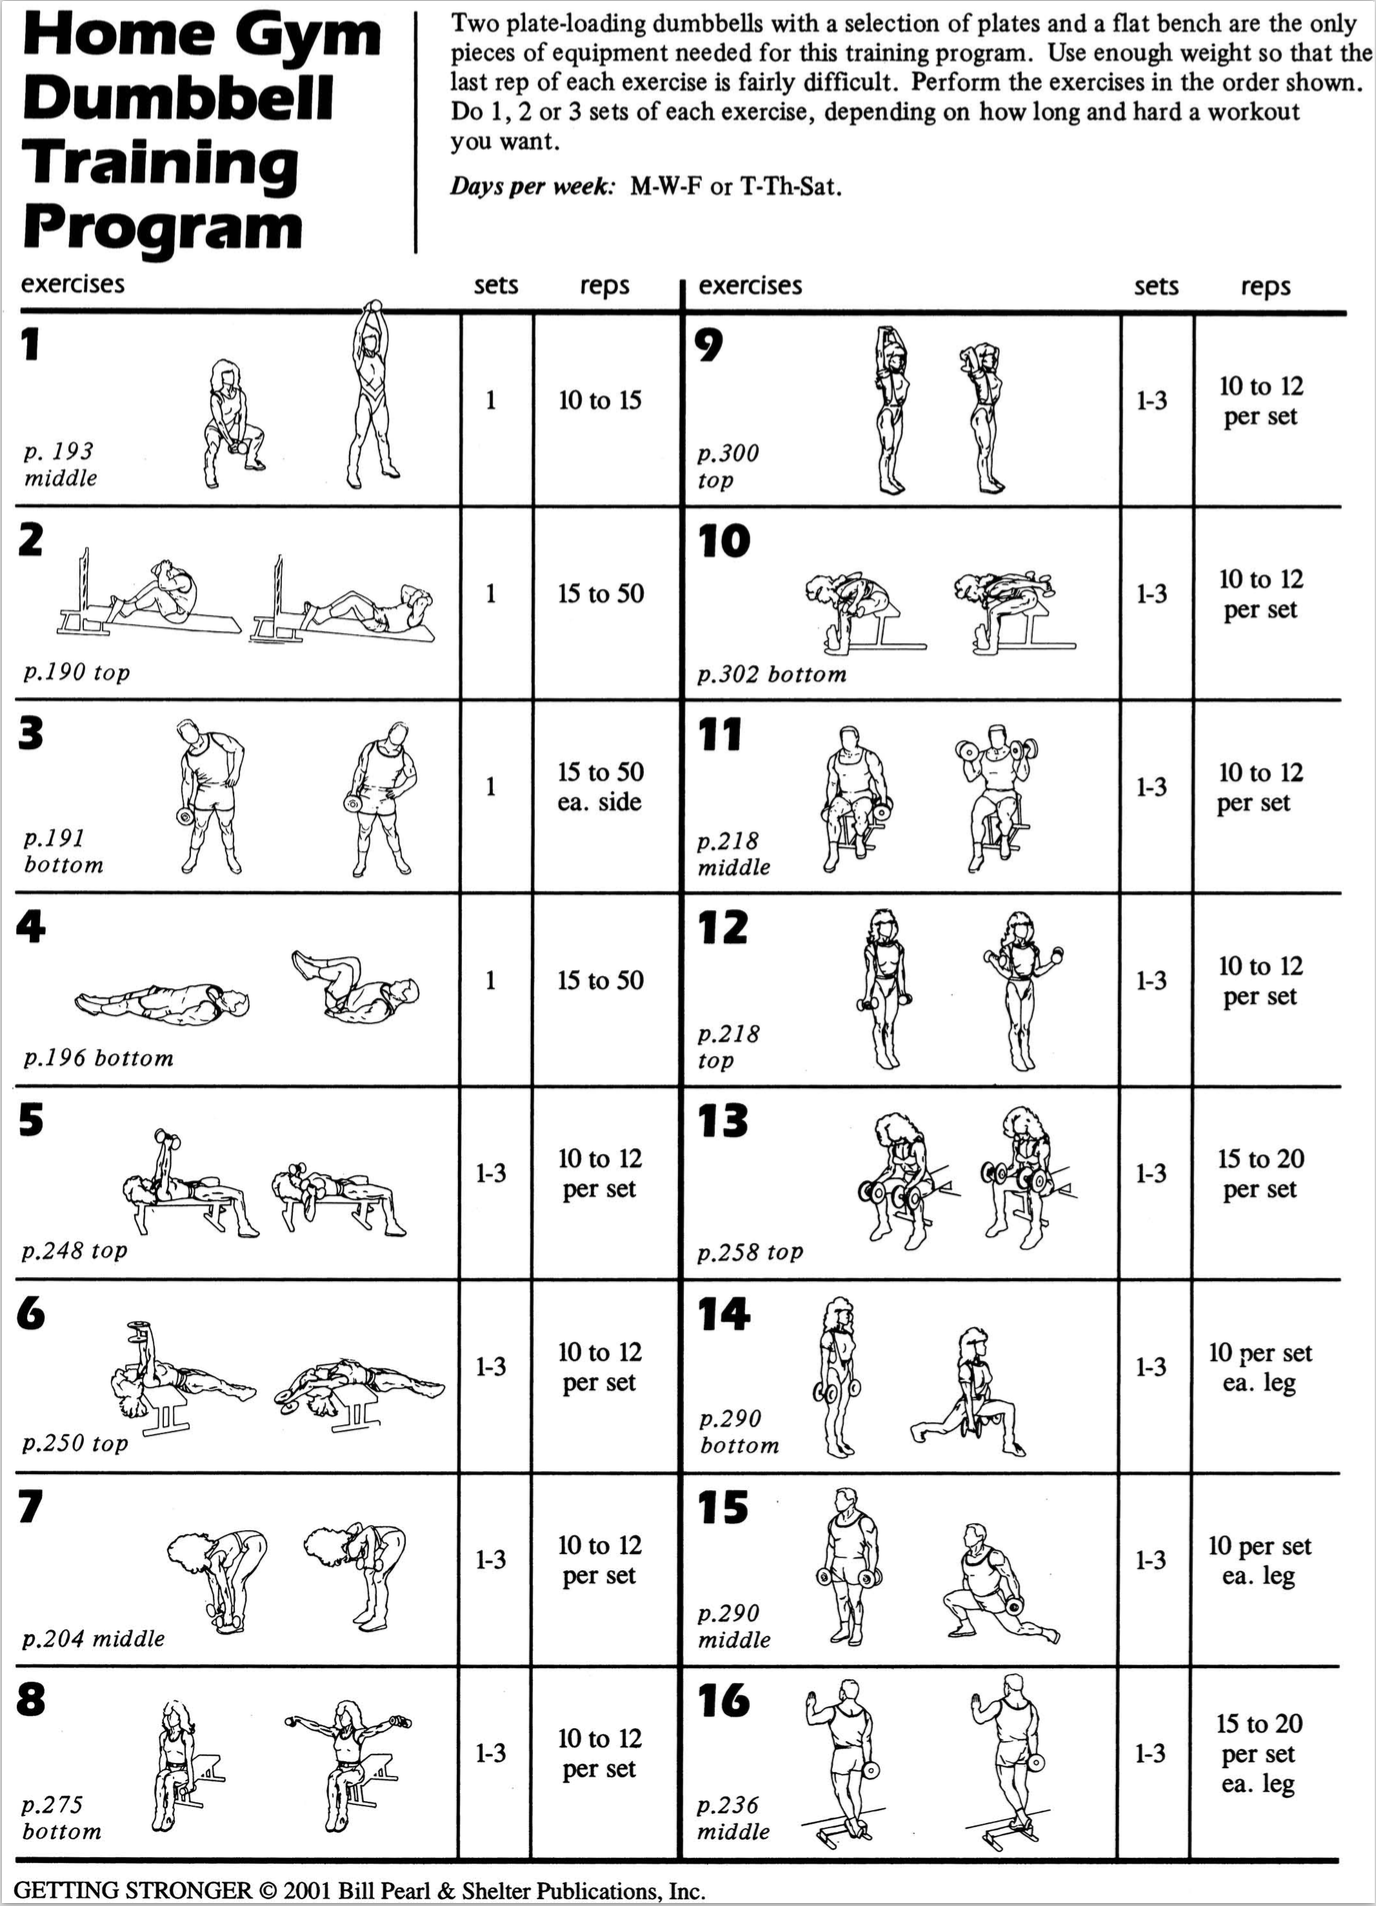 Dumbbell Workout Plan Pdf : dumbbell, workout, Dumbbell, Exercises, Pictures, Fasrpremium